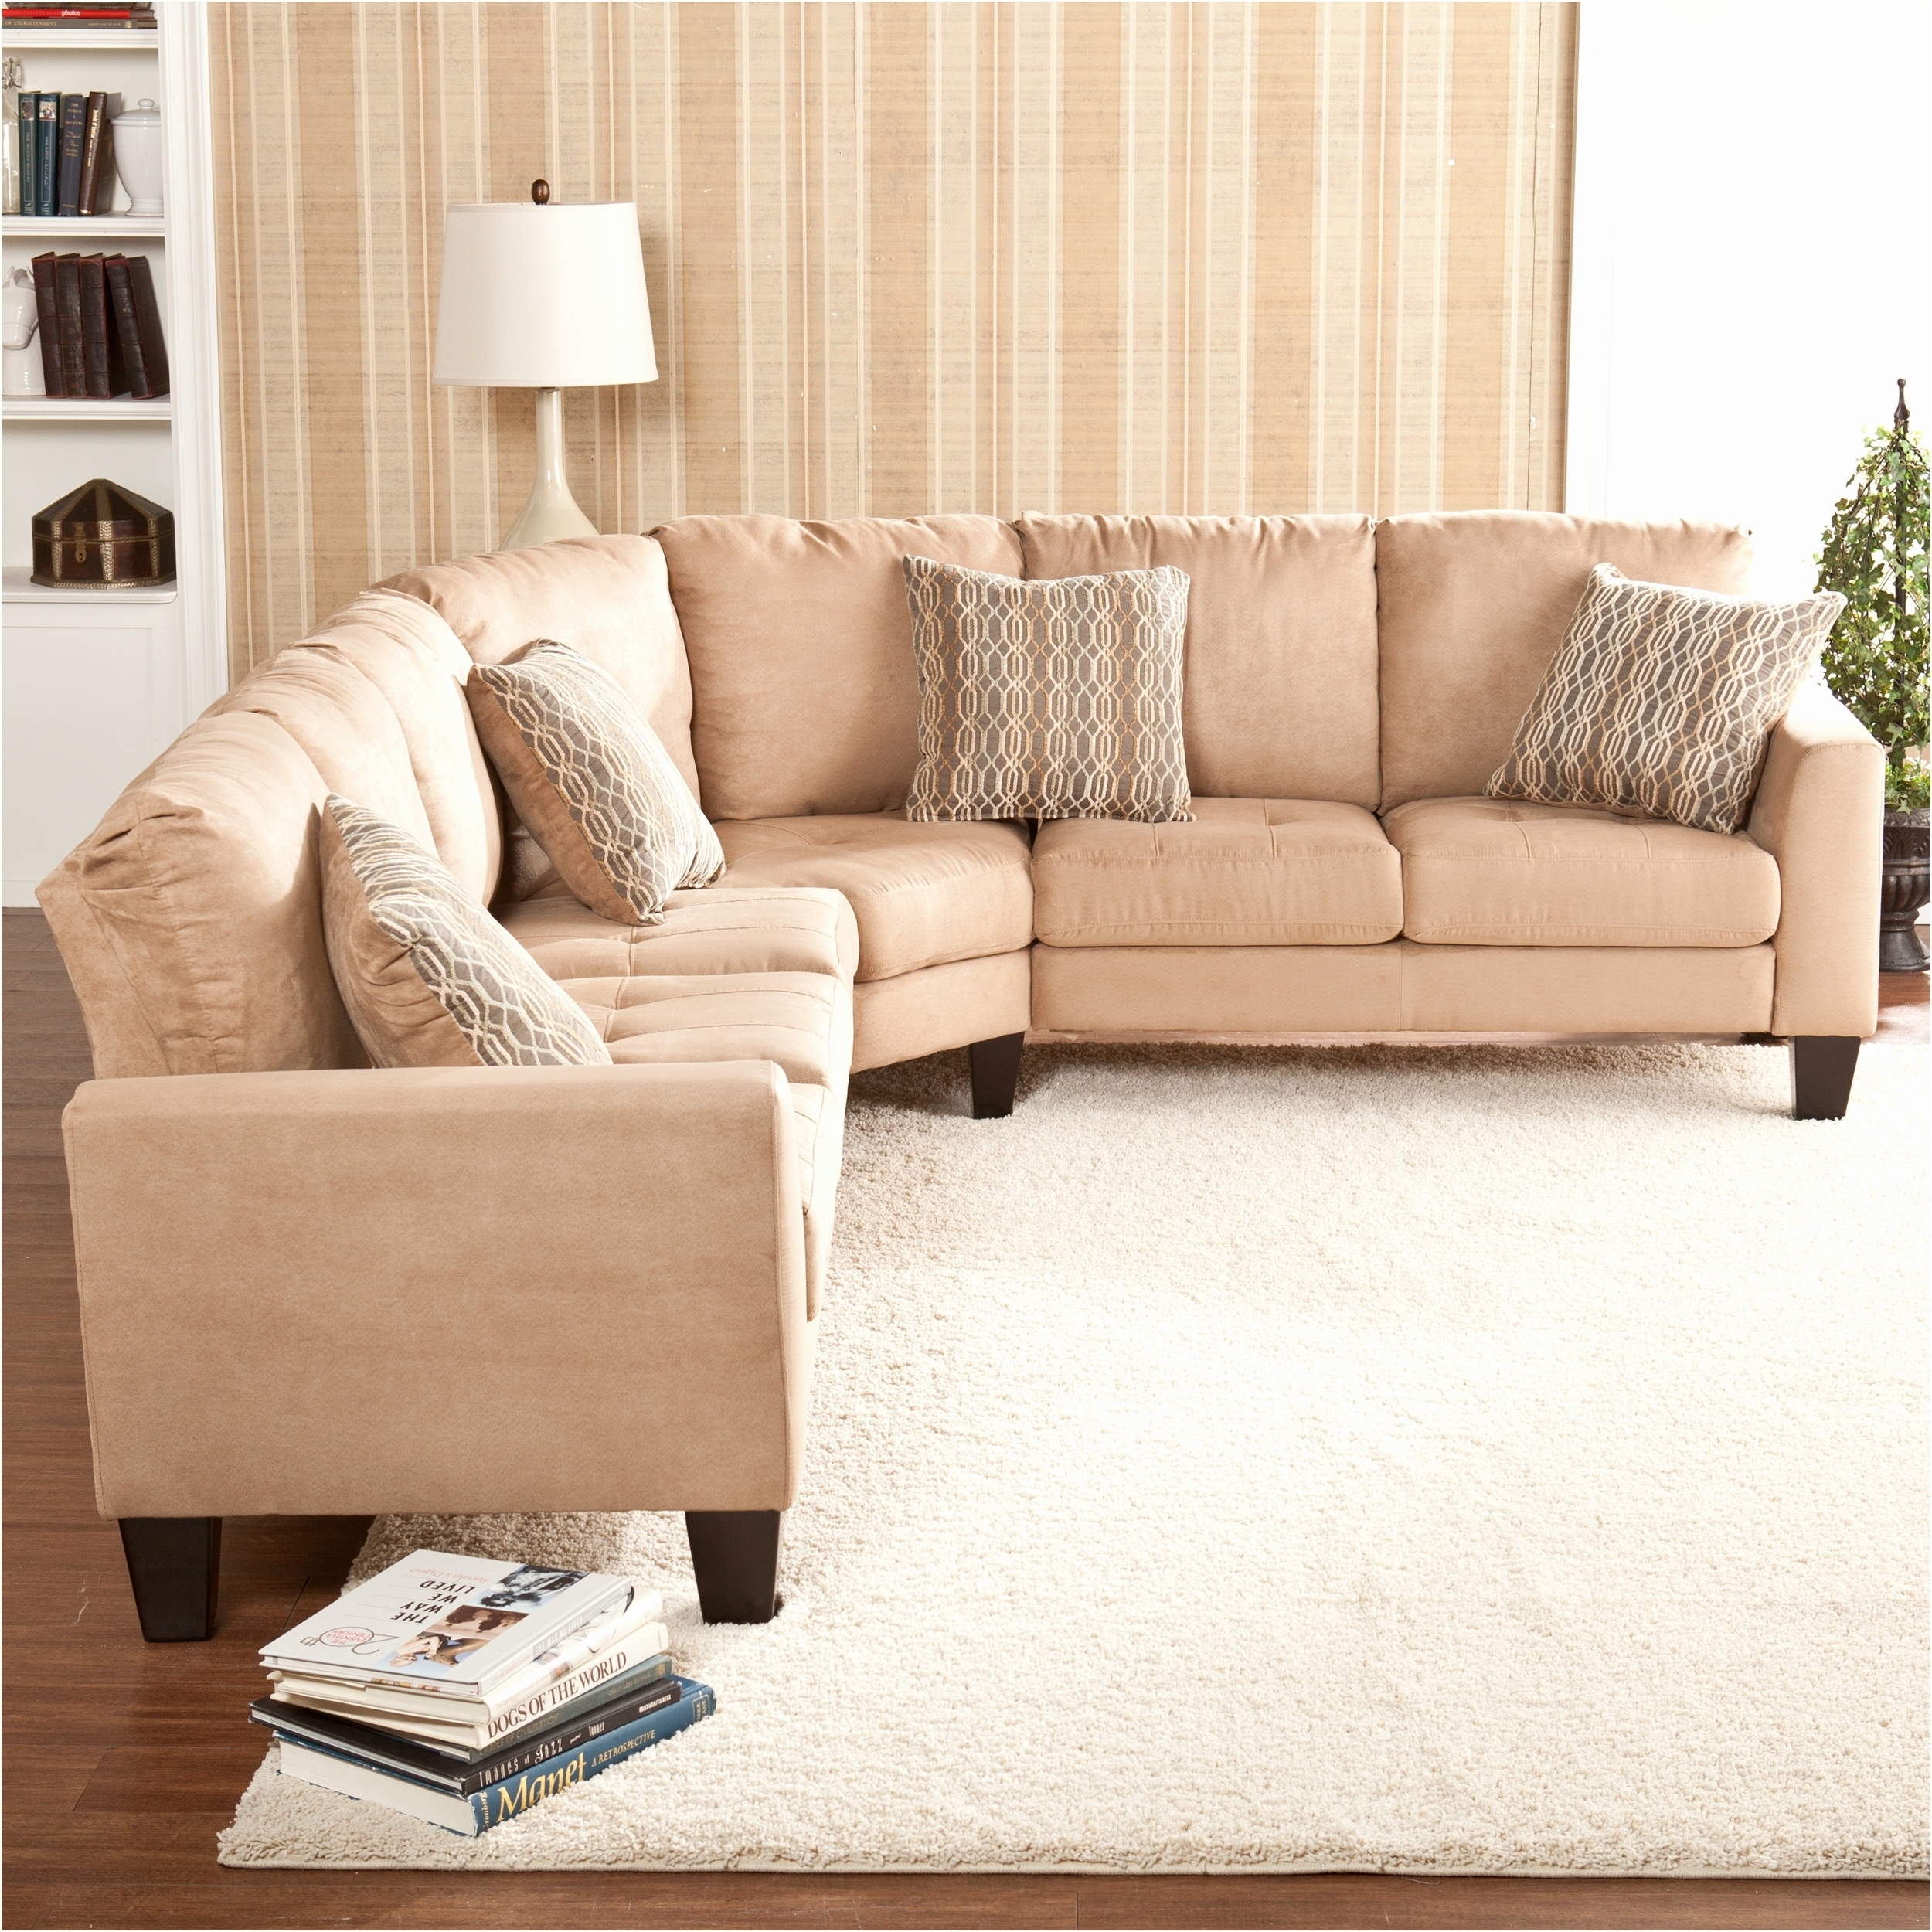 Recent Overstock Sectional Sofas Throughout Sofas : Brown Leather Sectional Corner Sofa Sofas Sofa Clearance (View 15 of 20)